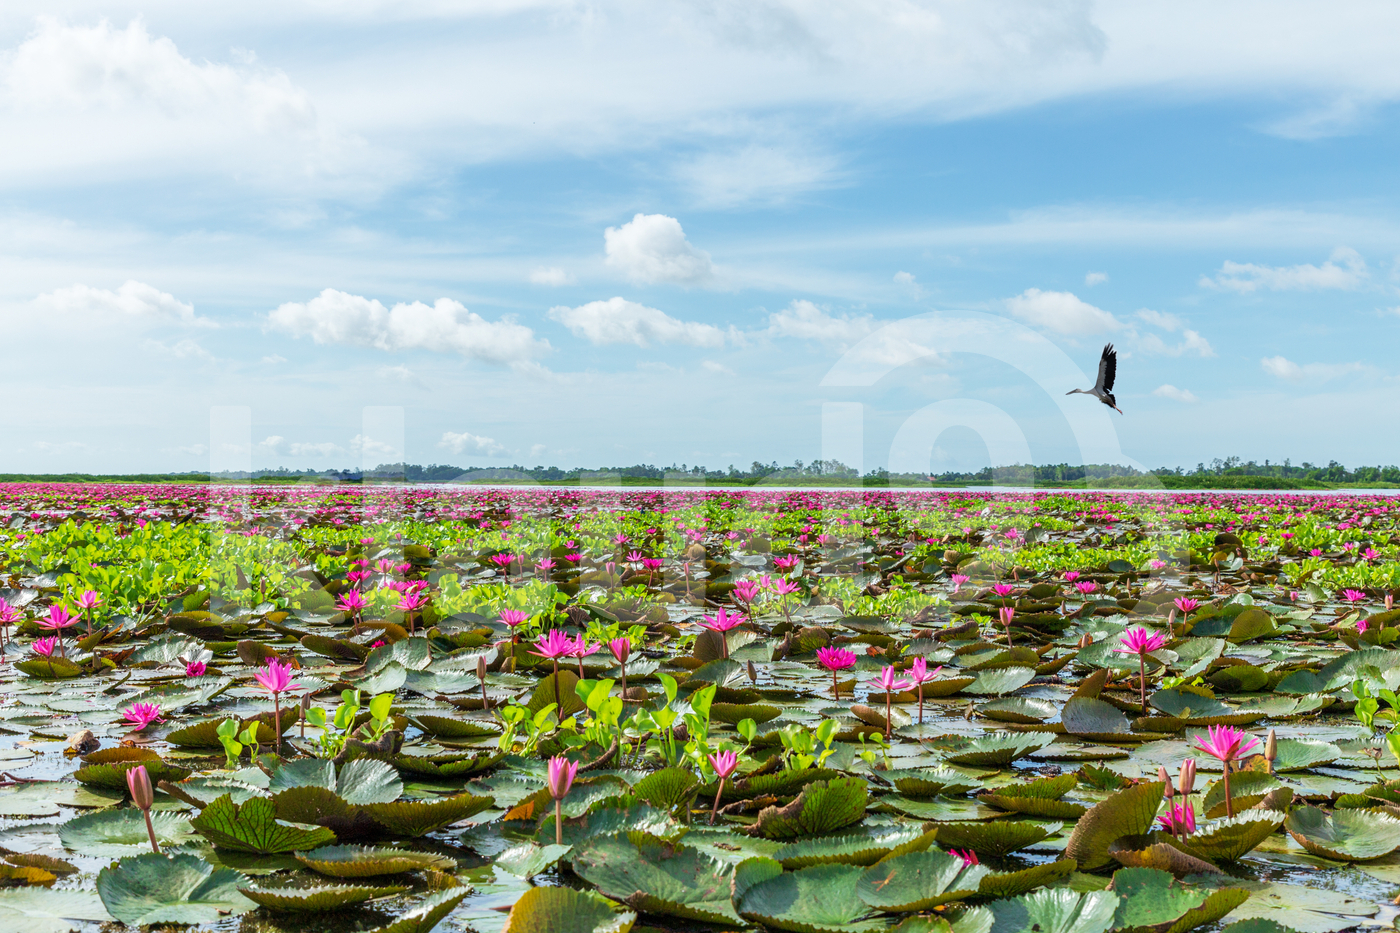 Million water lilies at the lake